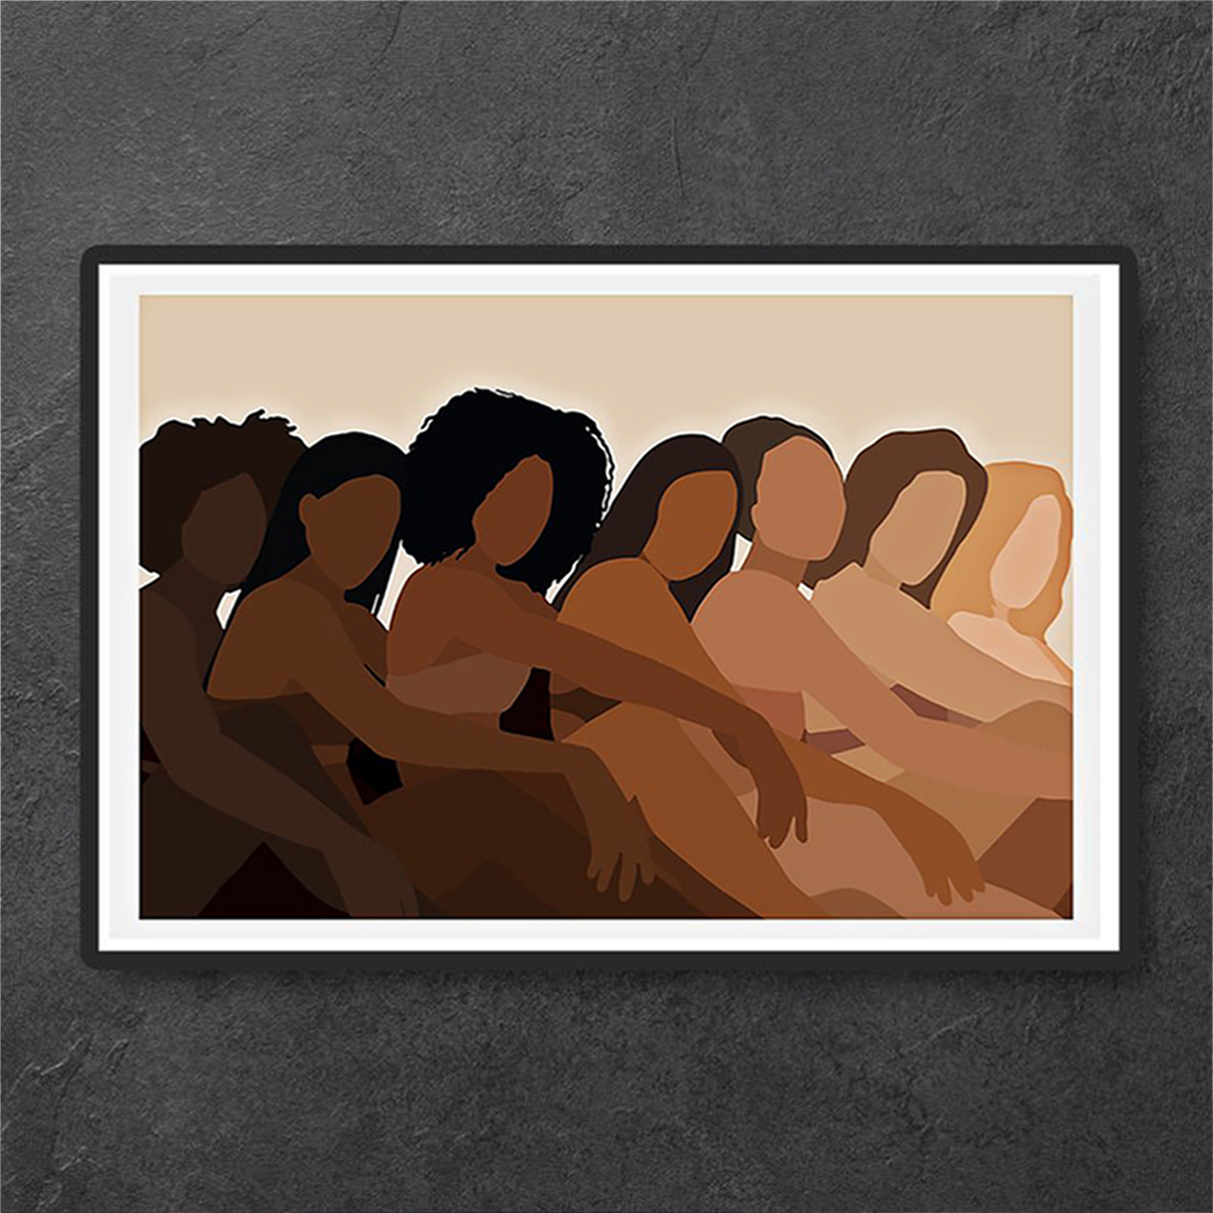 Melanin black woman poster A3